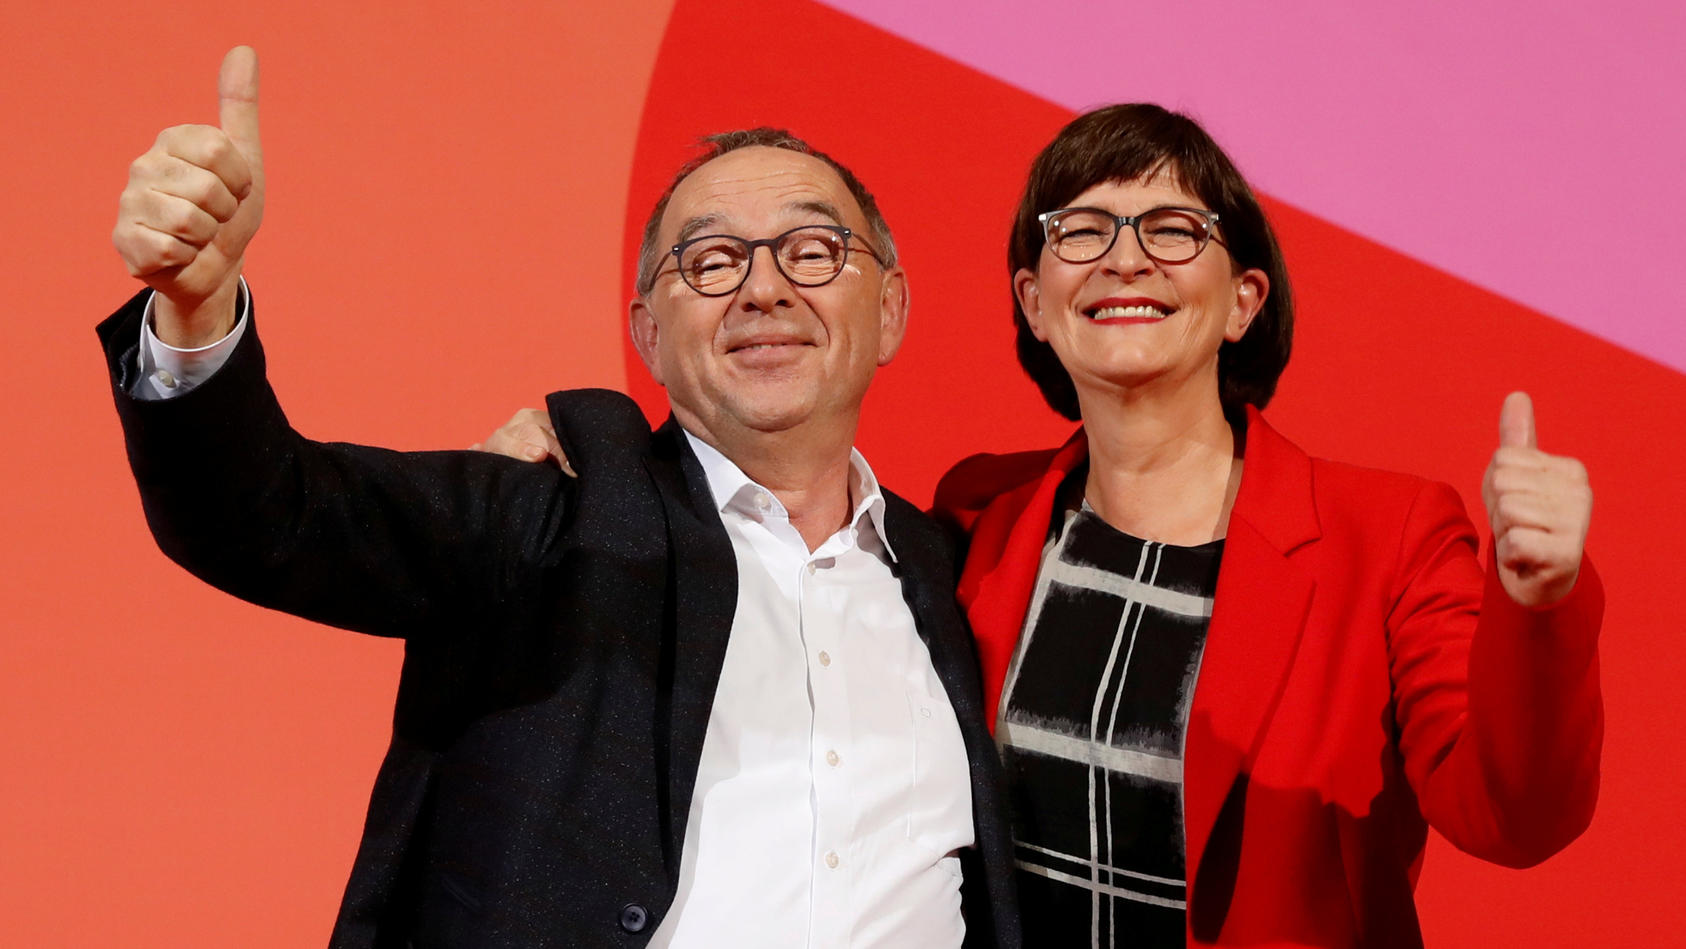 FILE PHOTO: SDP announces new leadership in Berlin